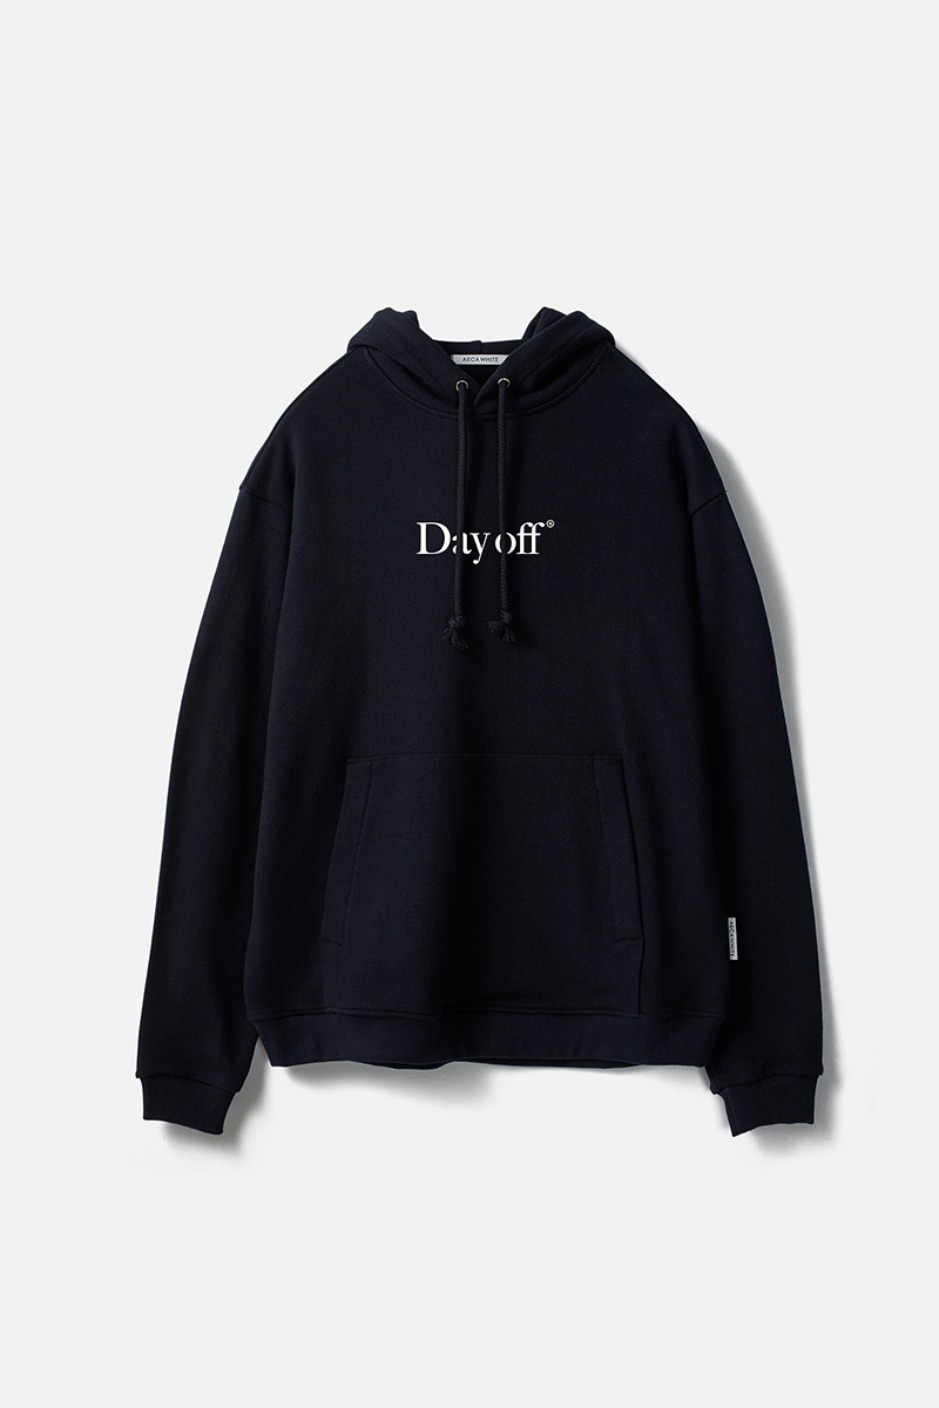 DAY OFF PULLOVER HOODIE-NAVY